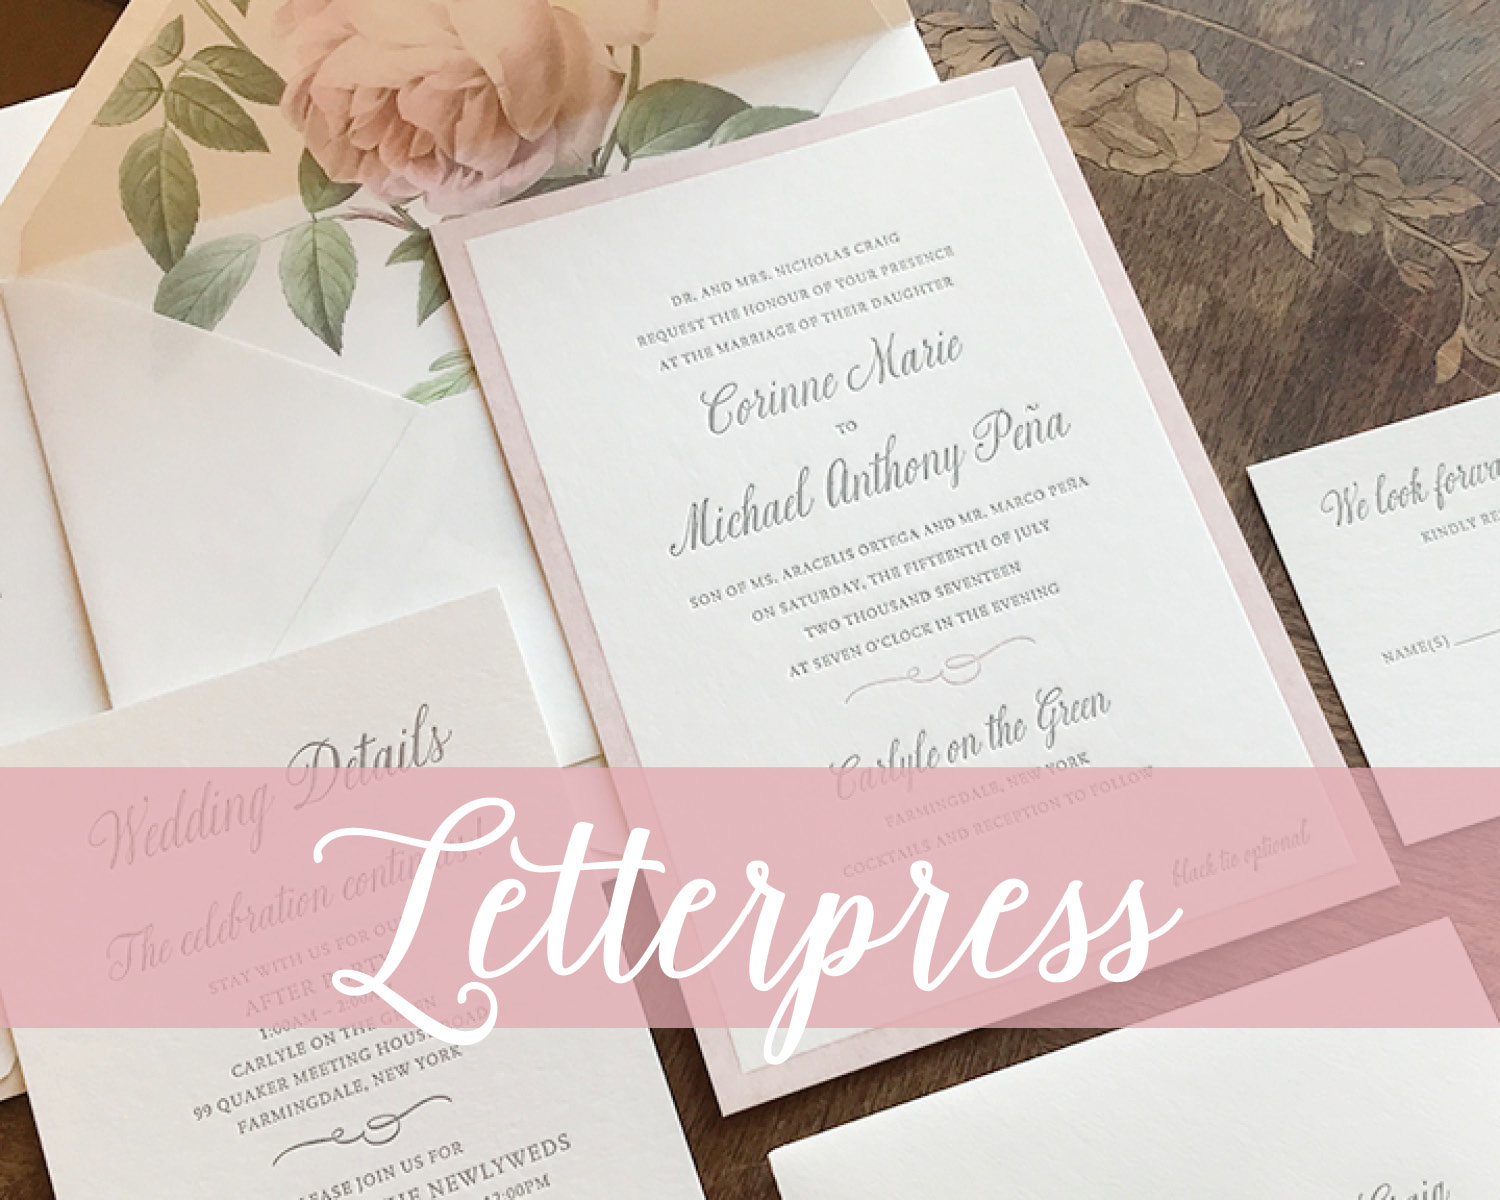 Invitation Printing 101 - Letterpress - Fat Cat Paperie | Custom ...